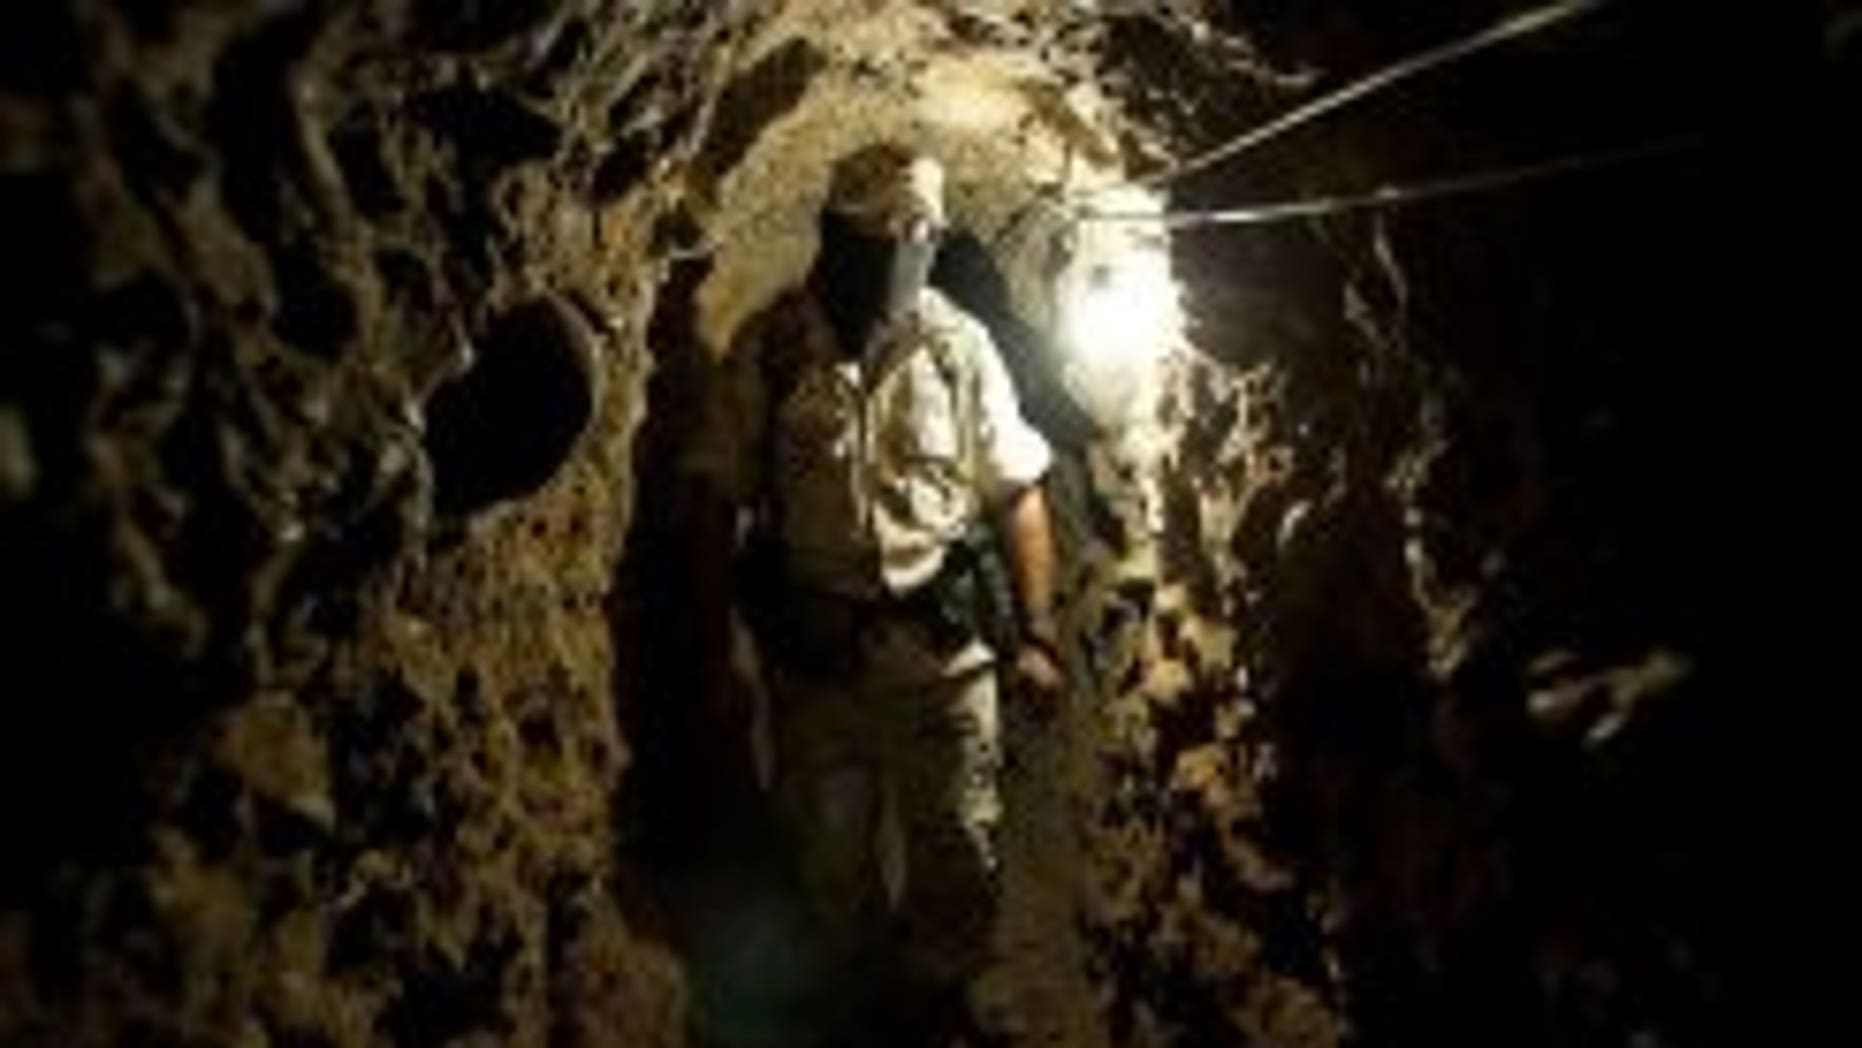 A soldier of the Mexican Army walks along a trans-border tunnel found near Tijuana Airport, in Tijuana, in the Mexican border with San Diego in the US, on August 11.